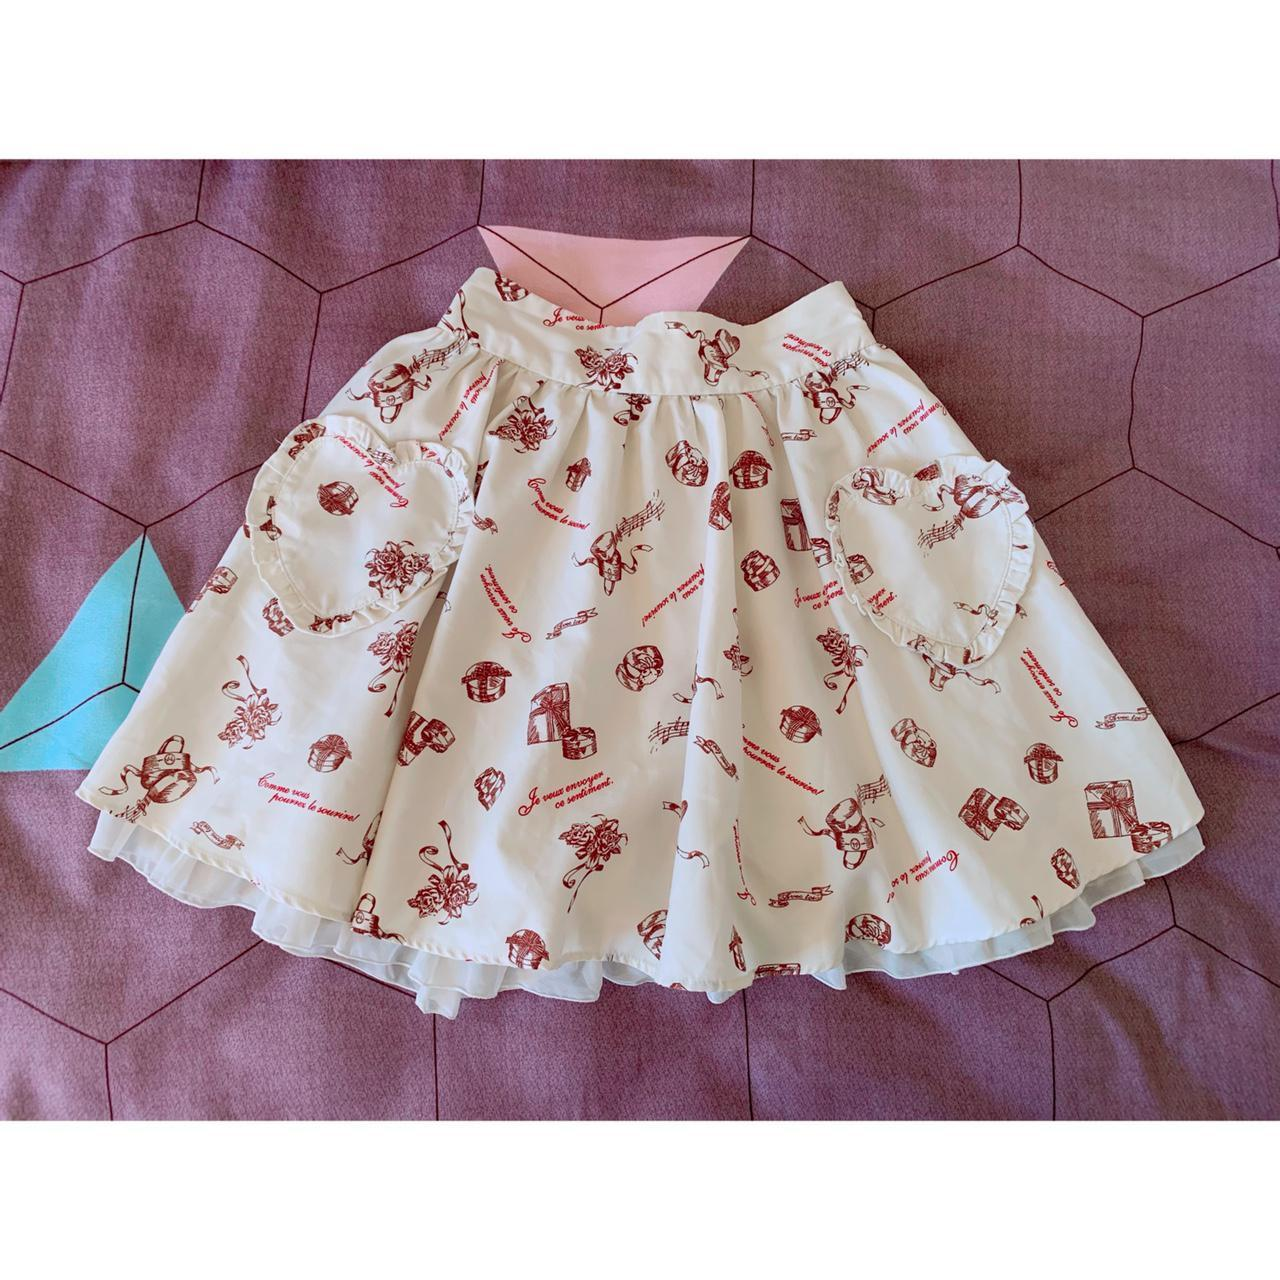 Product Image 1 - Ank Rouge skirt with heart